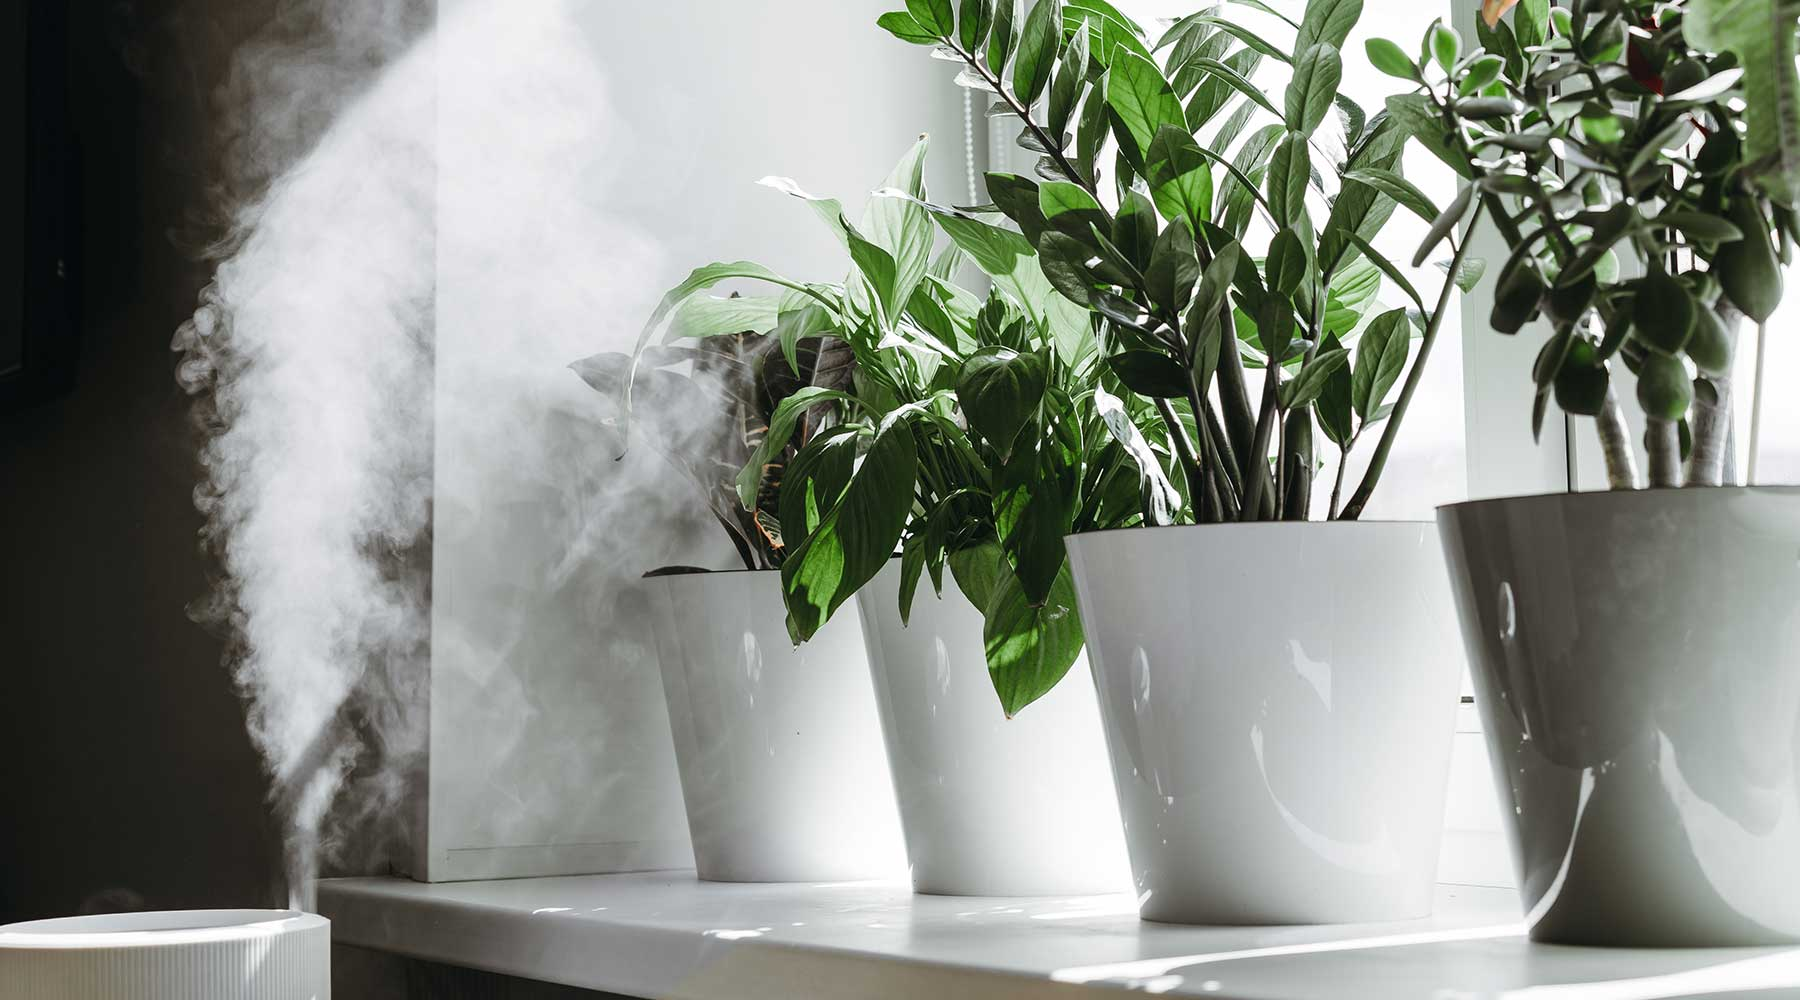 Humidifier providing steam for a row of houseplants on a window sill with sunlight streaming in.